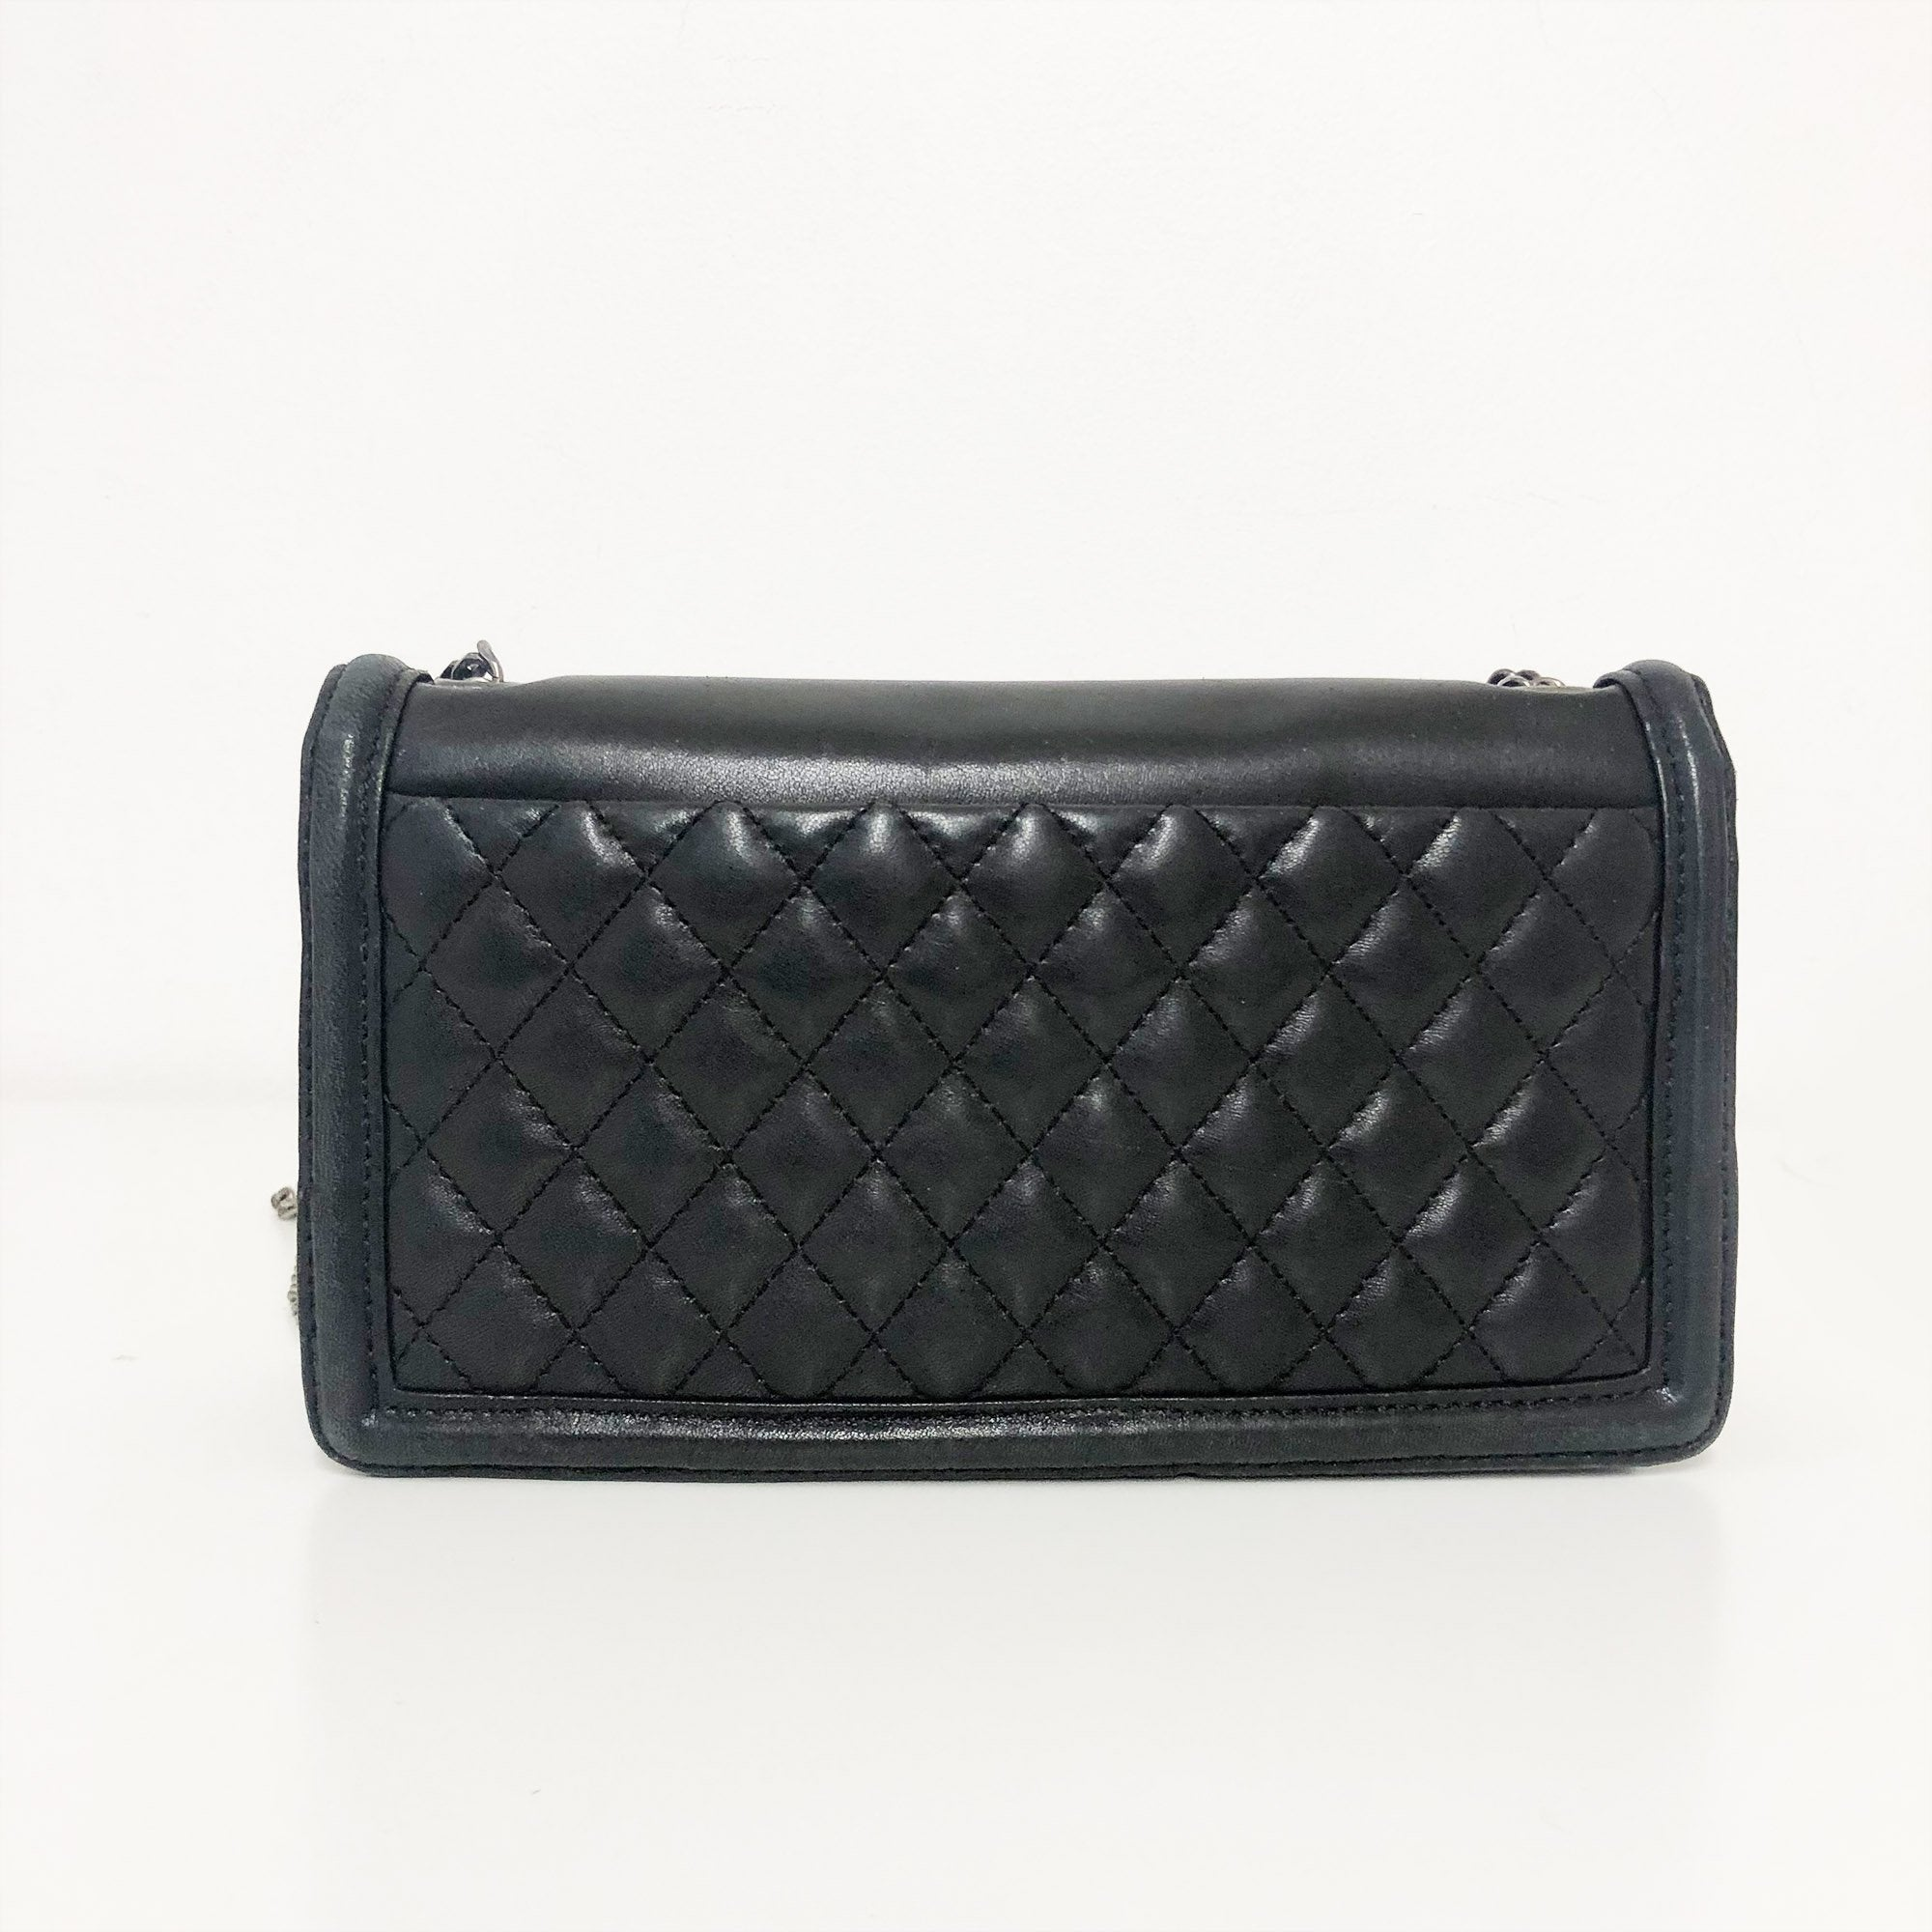 Chanel Black and White Striped Brick Flap Bag